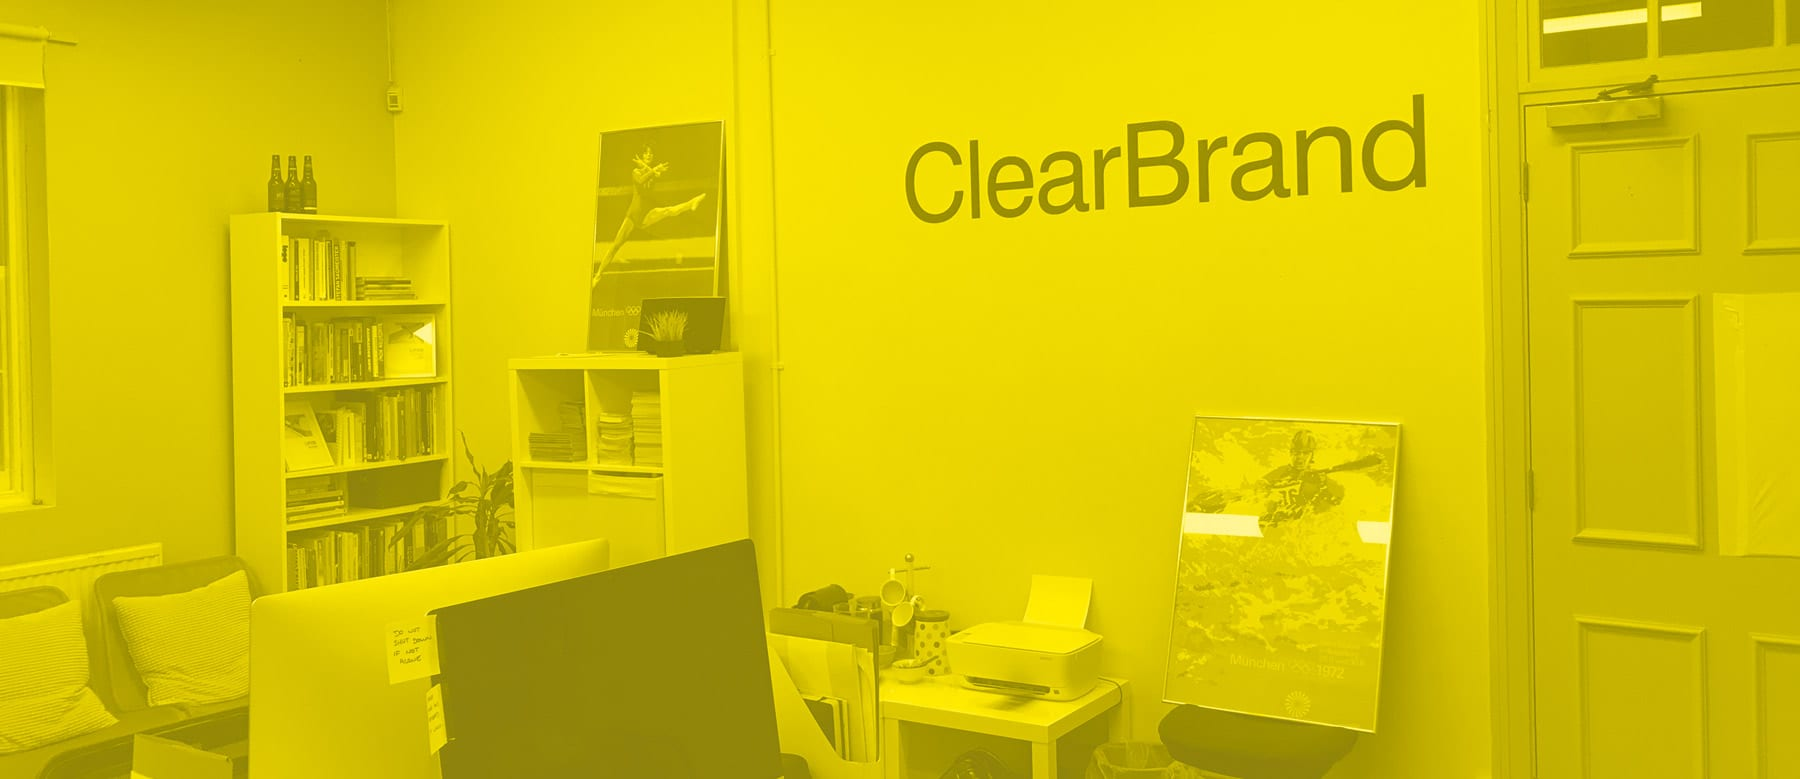 ClearBrand office